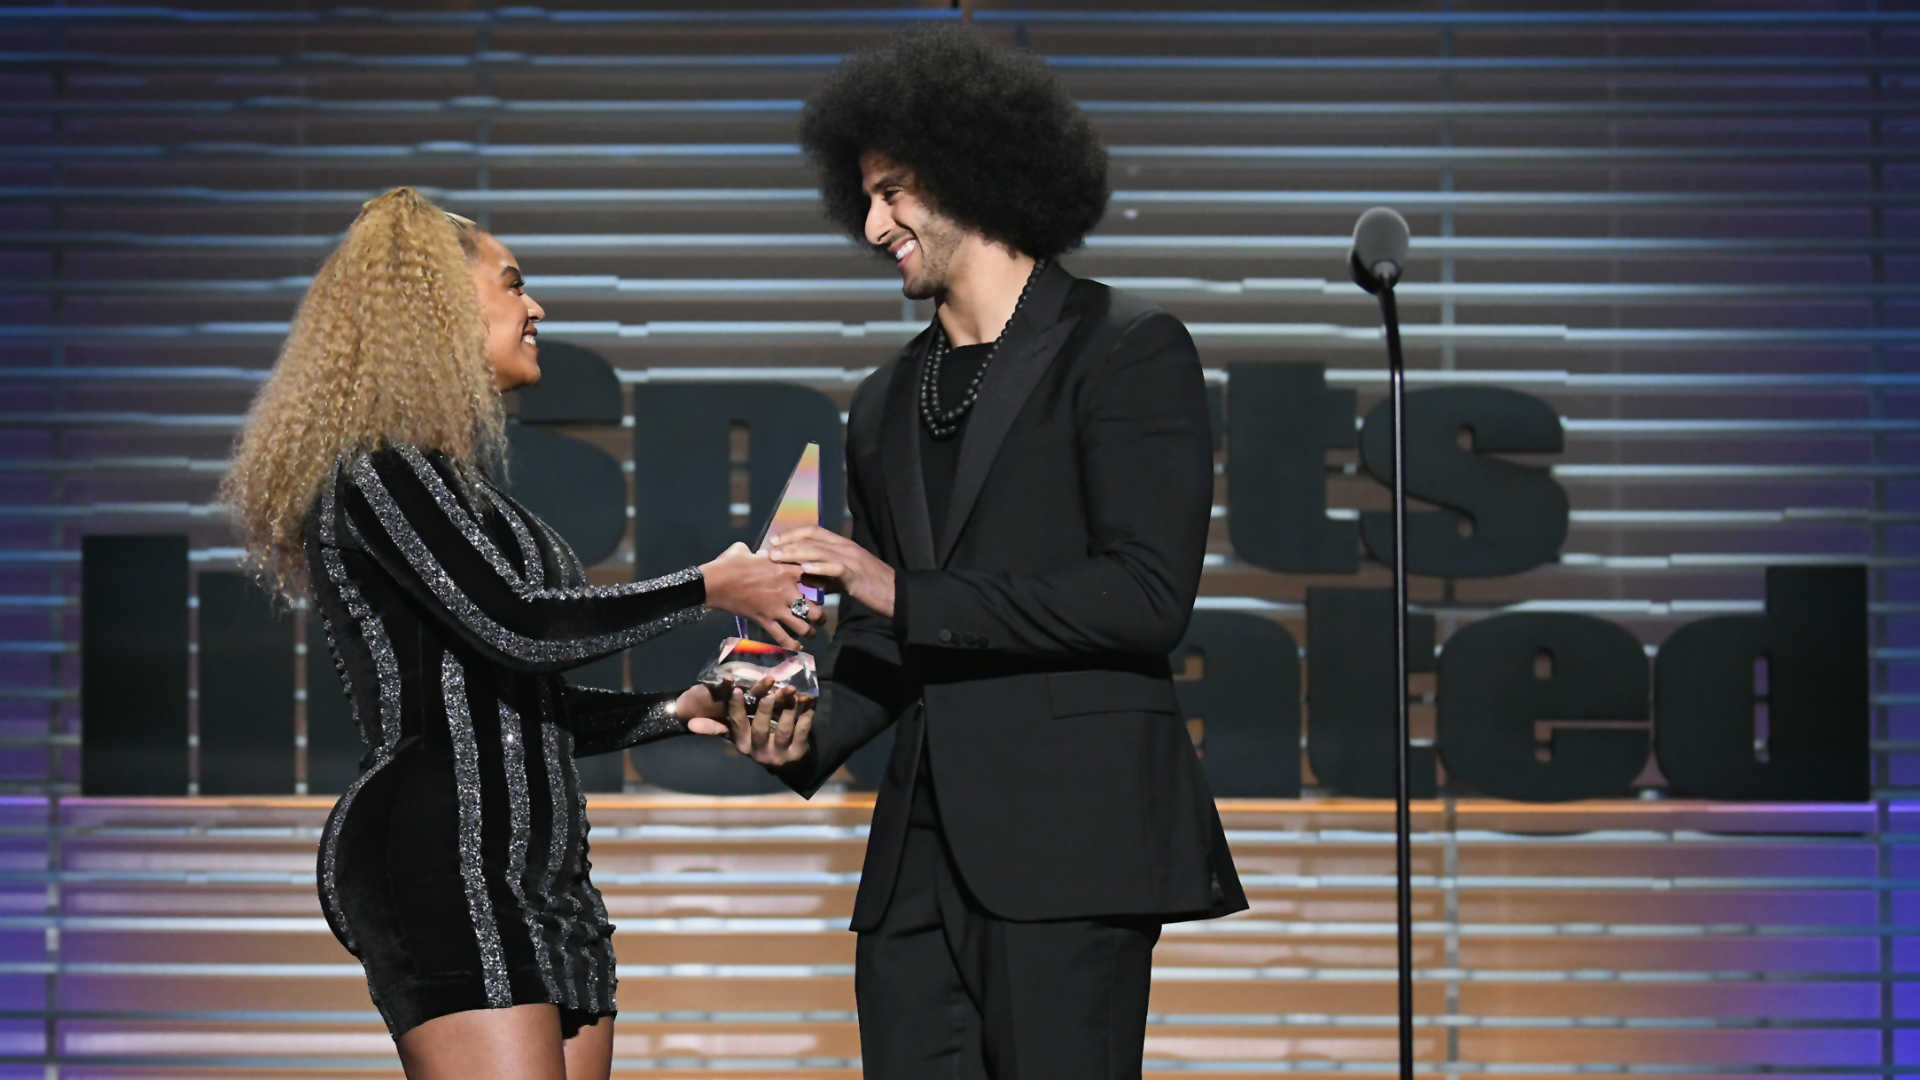 Colin Kaepernick vows to continue fighting after receiving Ali Award (from Beyonce!)